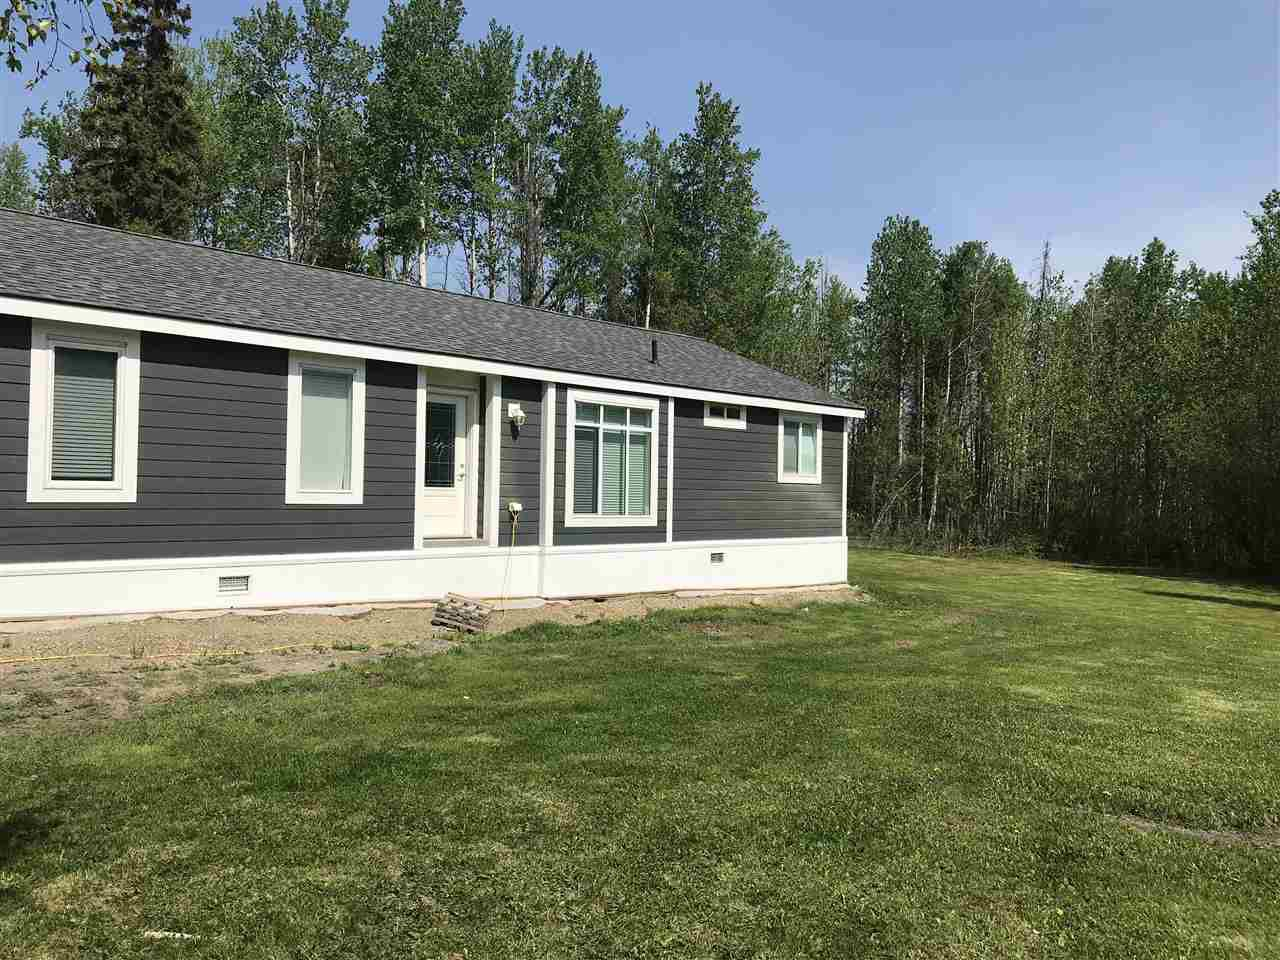 """Main Photo: 14440 256 Road in Fort St. John: Fort St. John - City NW Manufactured Home for sale in """"MONTNEY"""" (Fort St. John (Zone 60))  : MLS®# R2374528"""